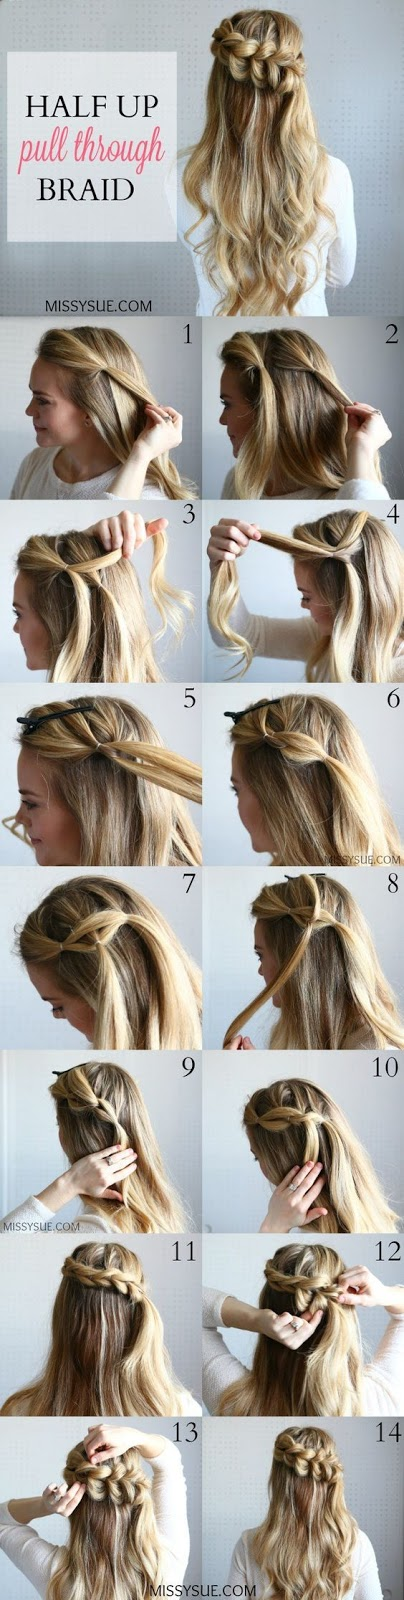 VERSATILE BRAID STYLES FOR GIRLS THAT MUST TRY